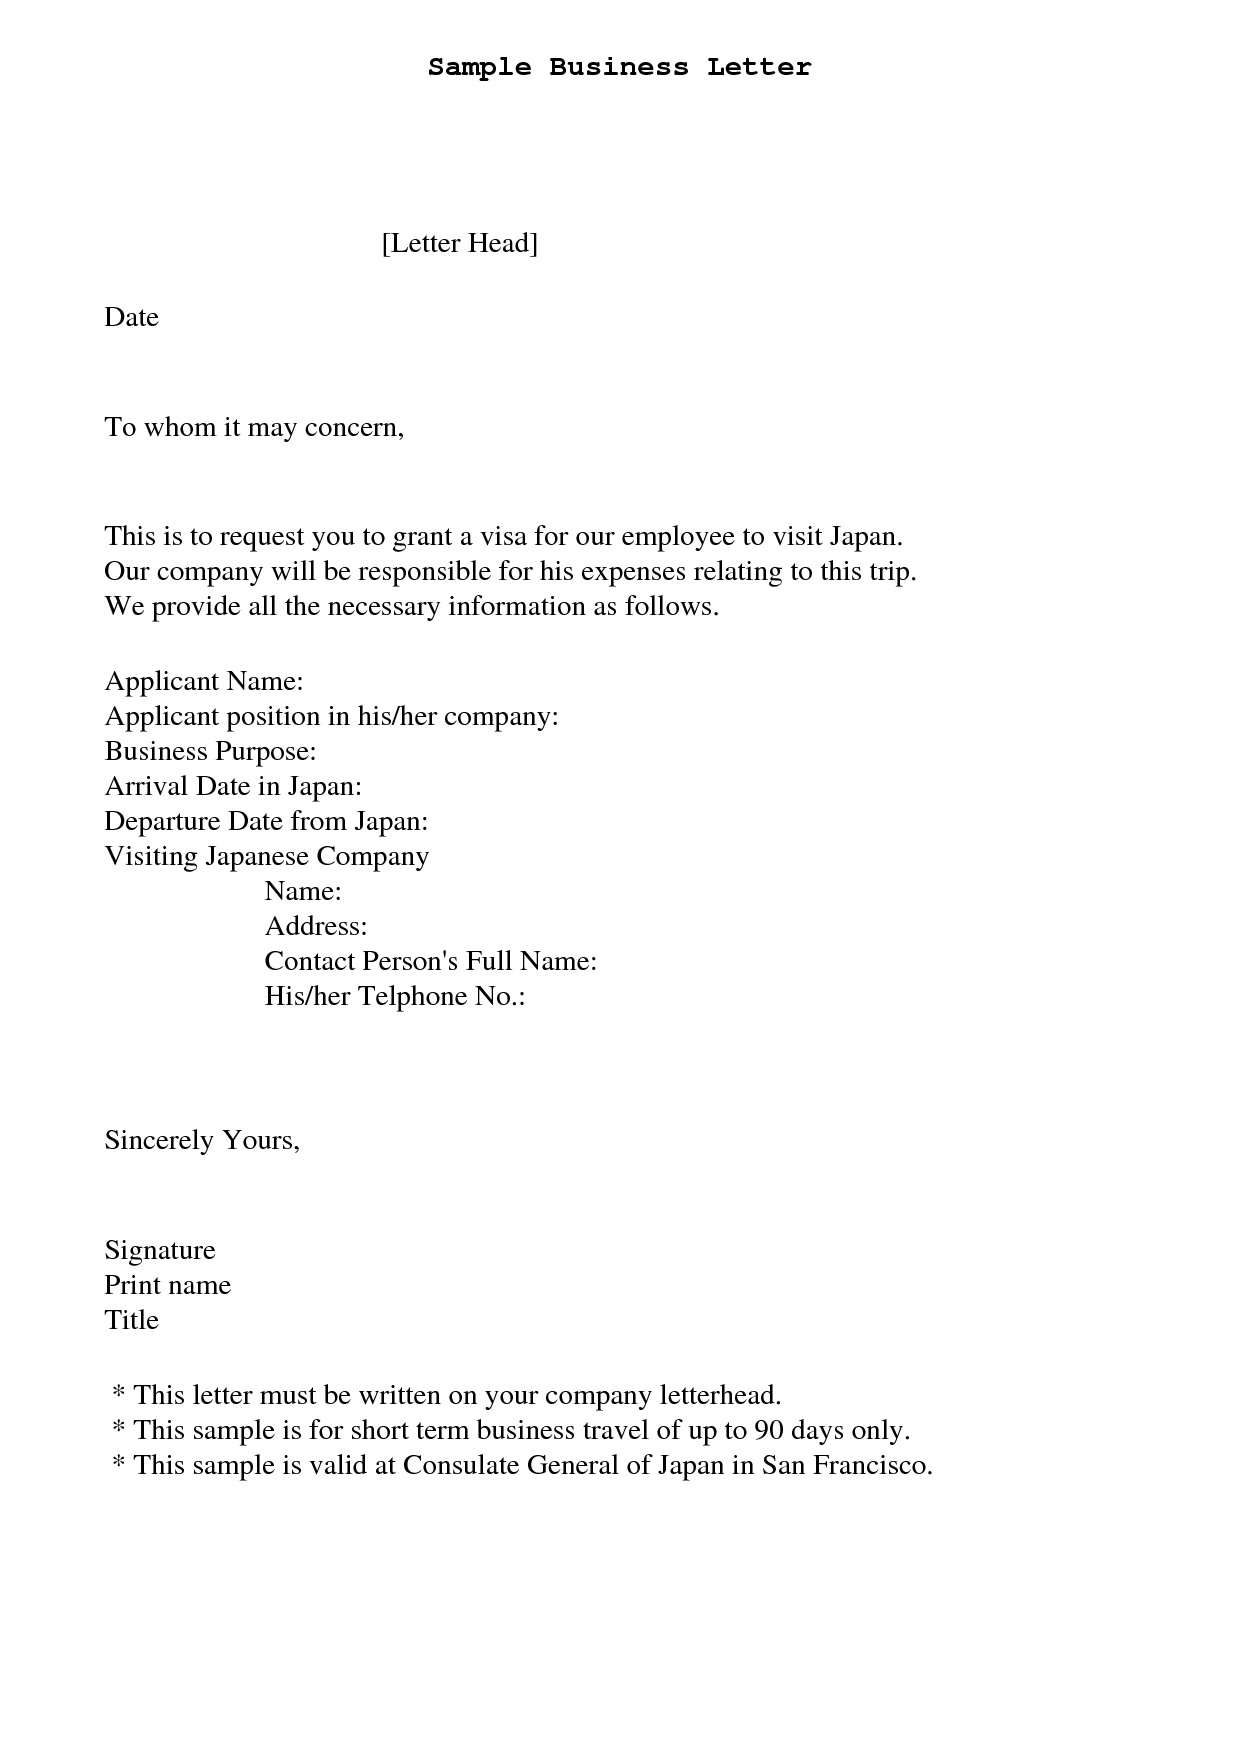 to whom it may concern letter sample pdf professional letter format to whom it may concern formal 19708